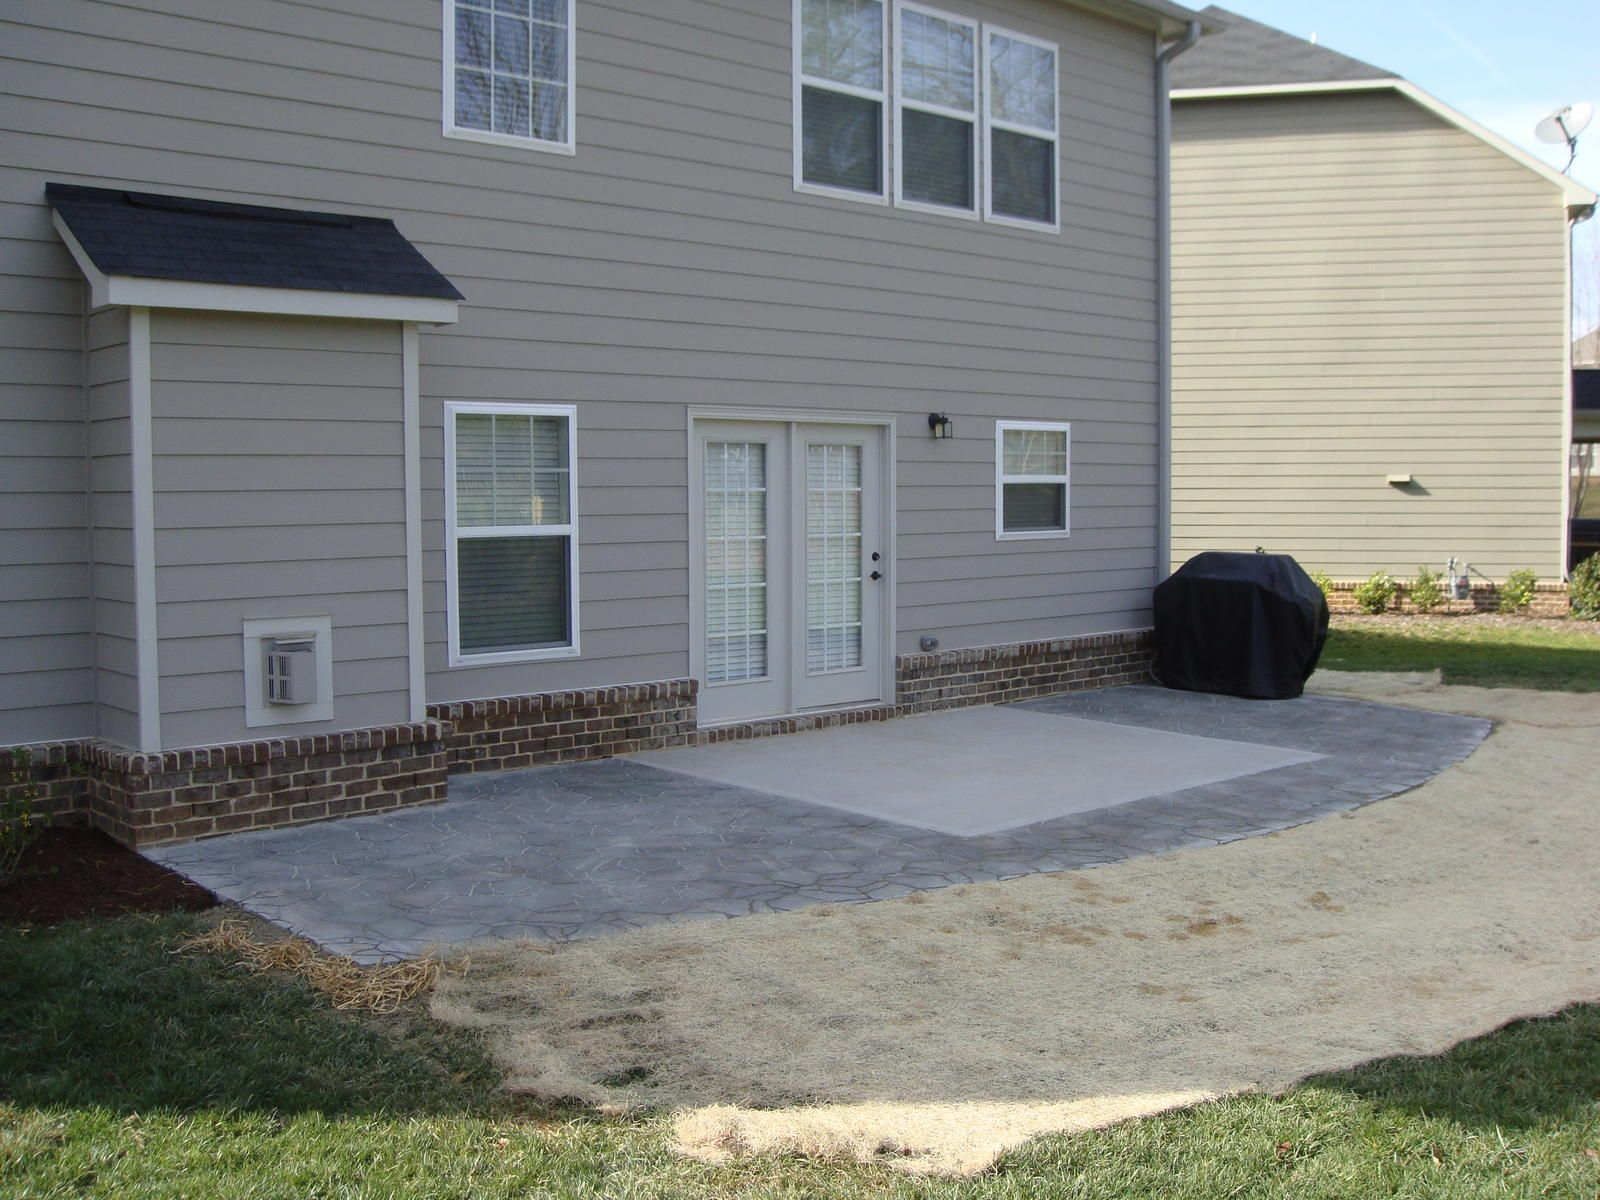 Prepossessing Extend Patio Deck Painting Backyard Or Other ... on Backyard Patio Extension Ideas id=87044